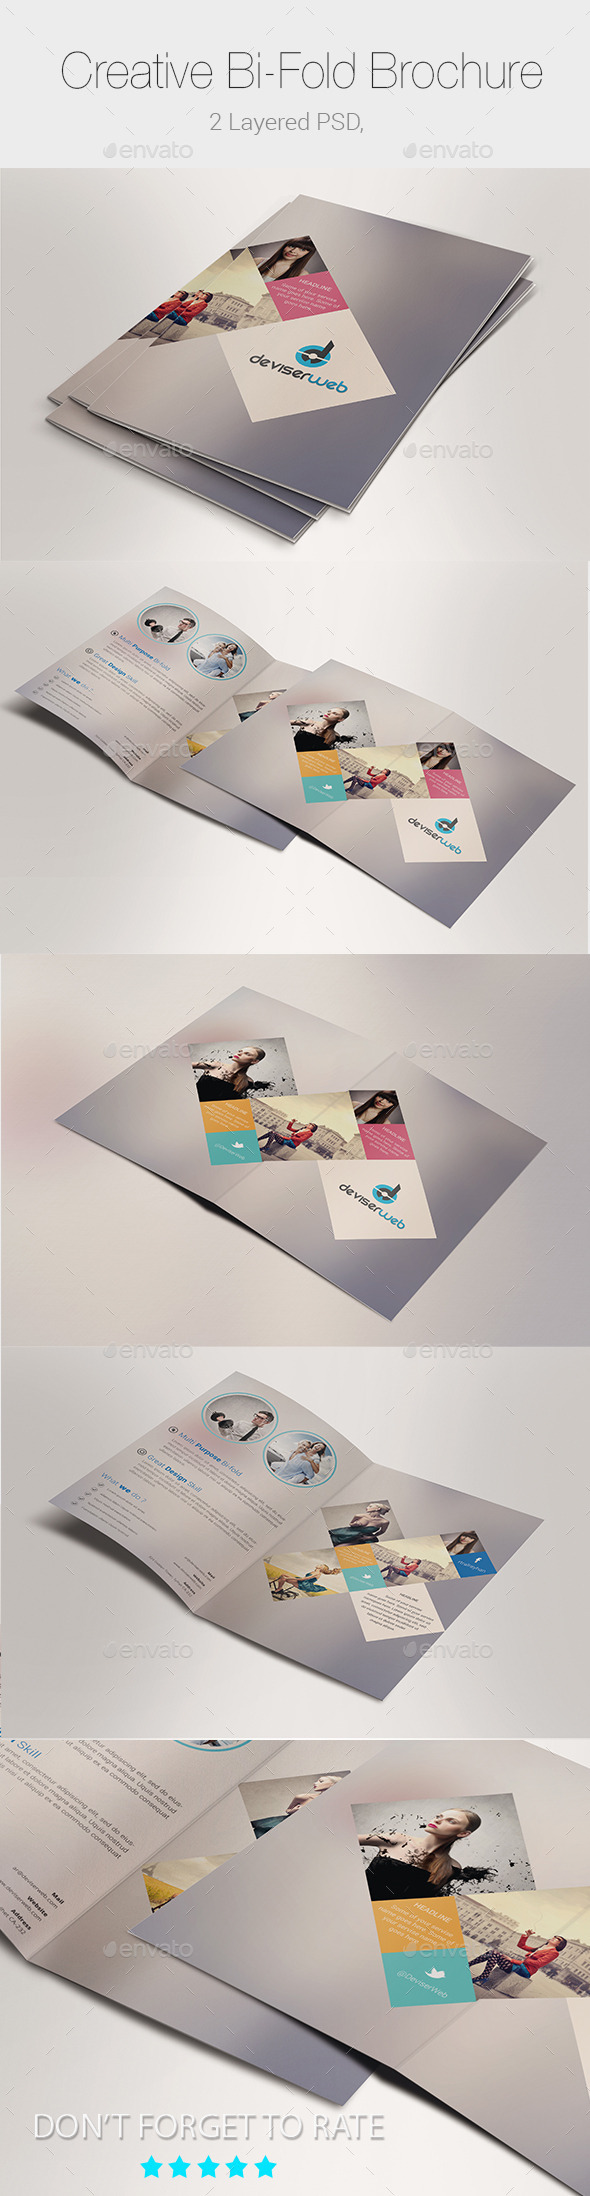 Minimal Creative Bi-fold Brochure Templates - Corporate Brochures